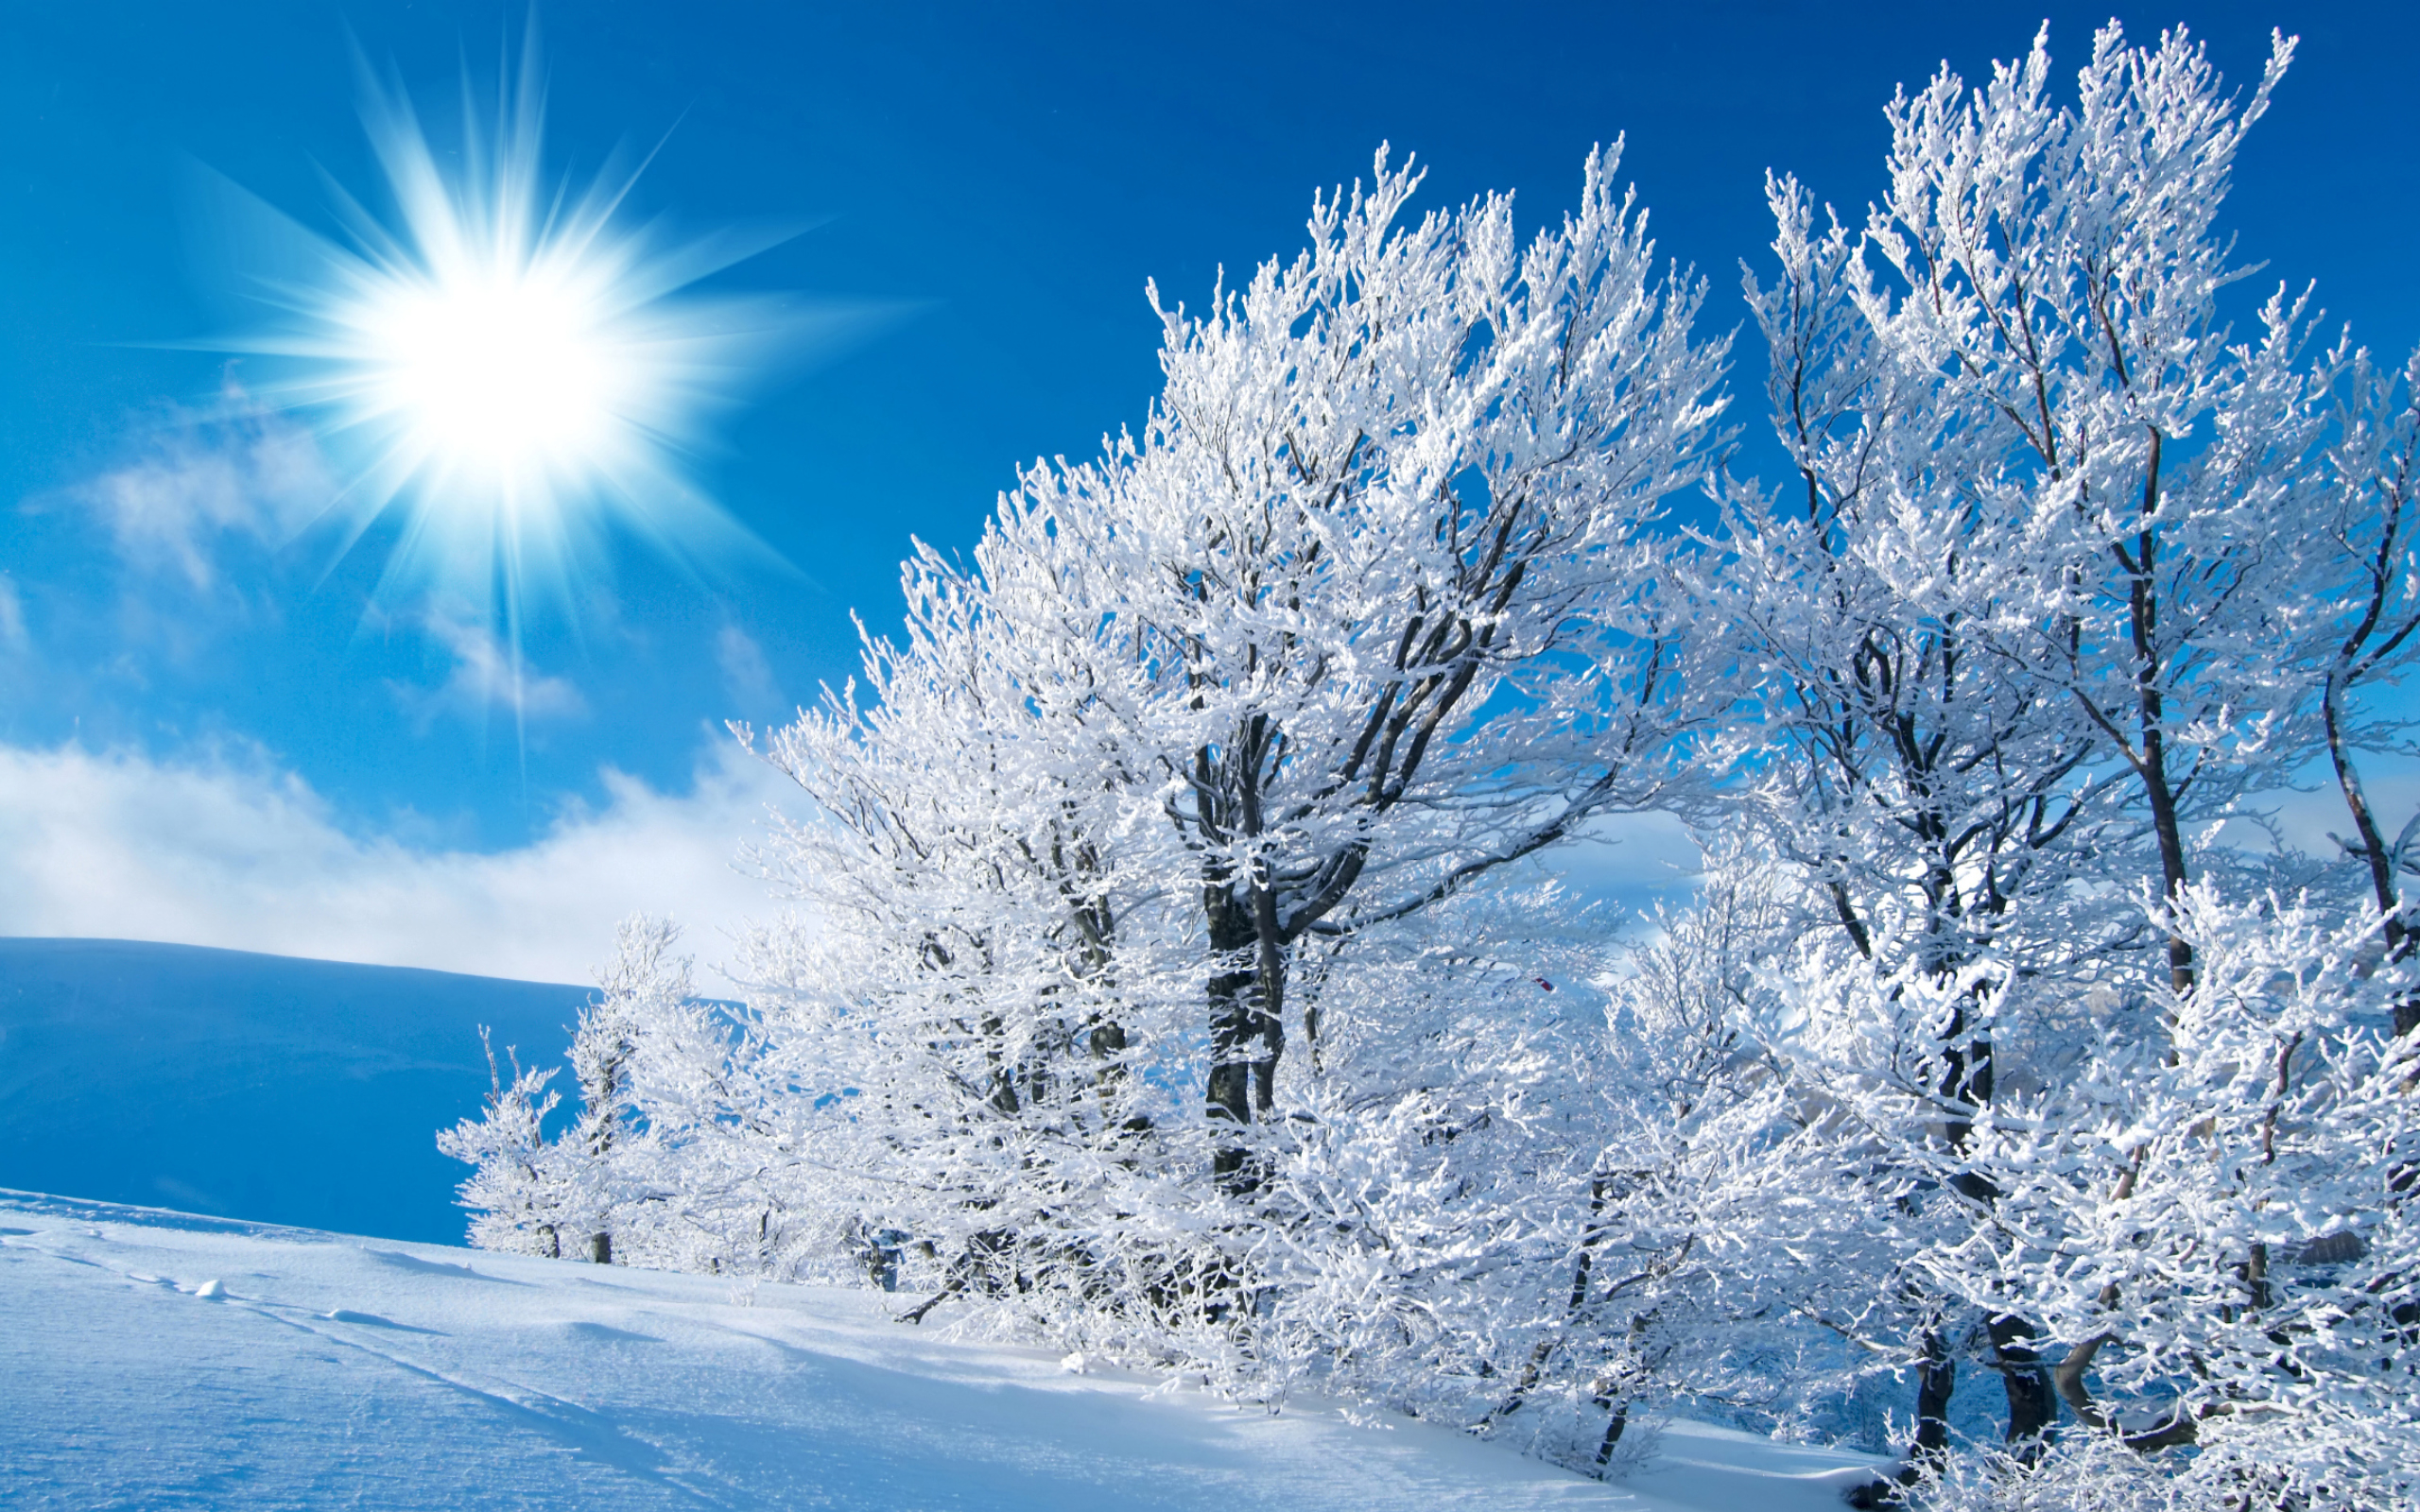 WINTER WALLPAPER SNOW HD WALLPAPER FOR DESKTOP SCENE WALLPAPERSjpg 2560x1600